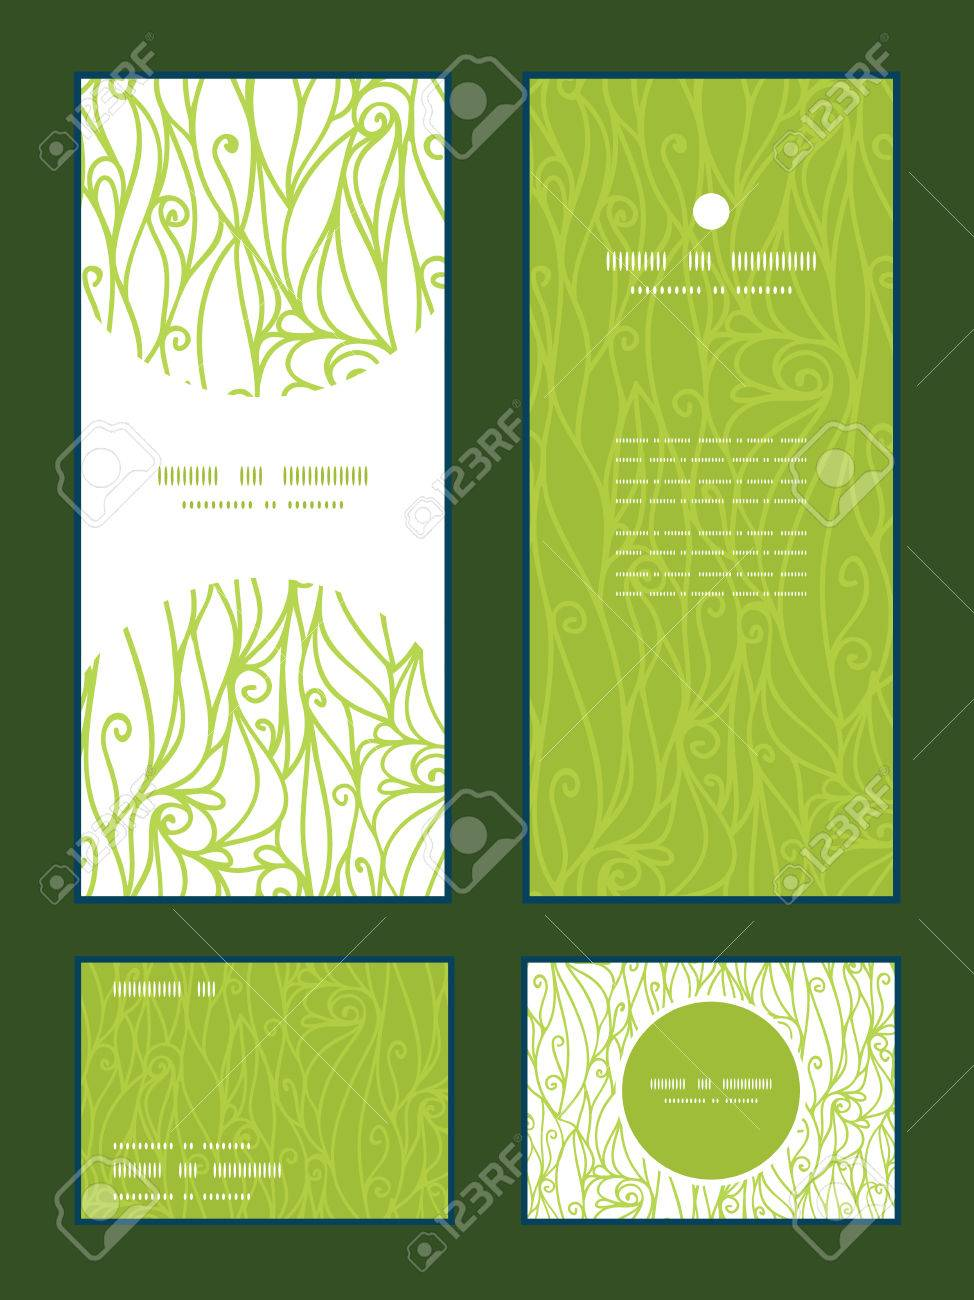 Vector abstract swirls texture vertical frame pattern invitation greeting, RSVP and thank you cards set - 35146393